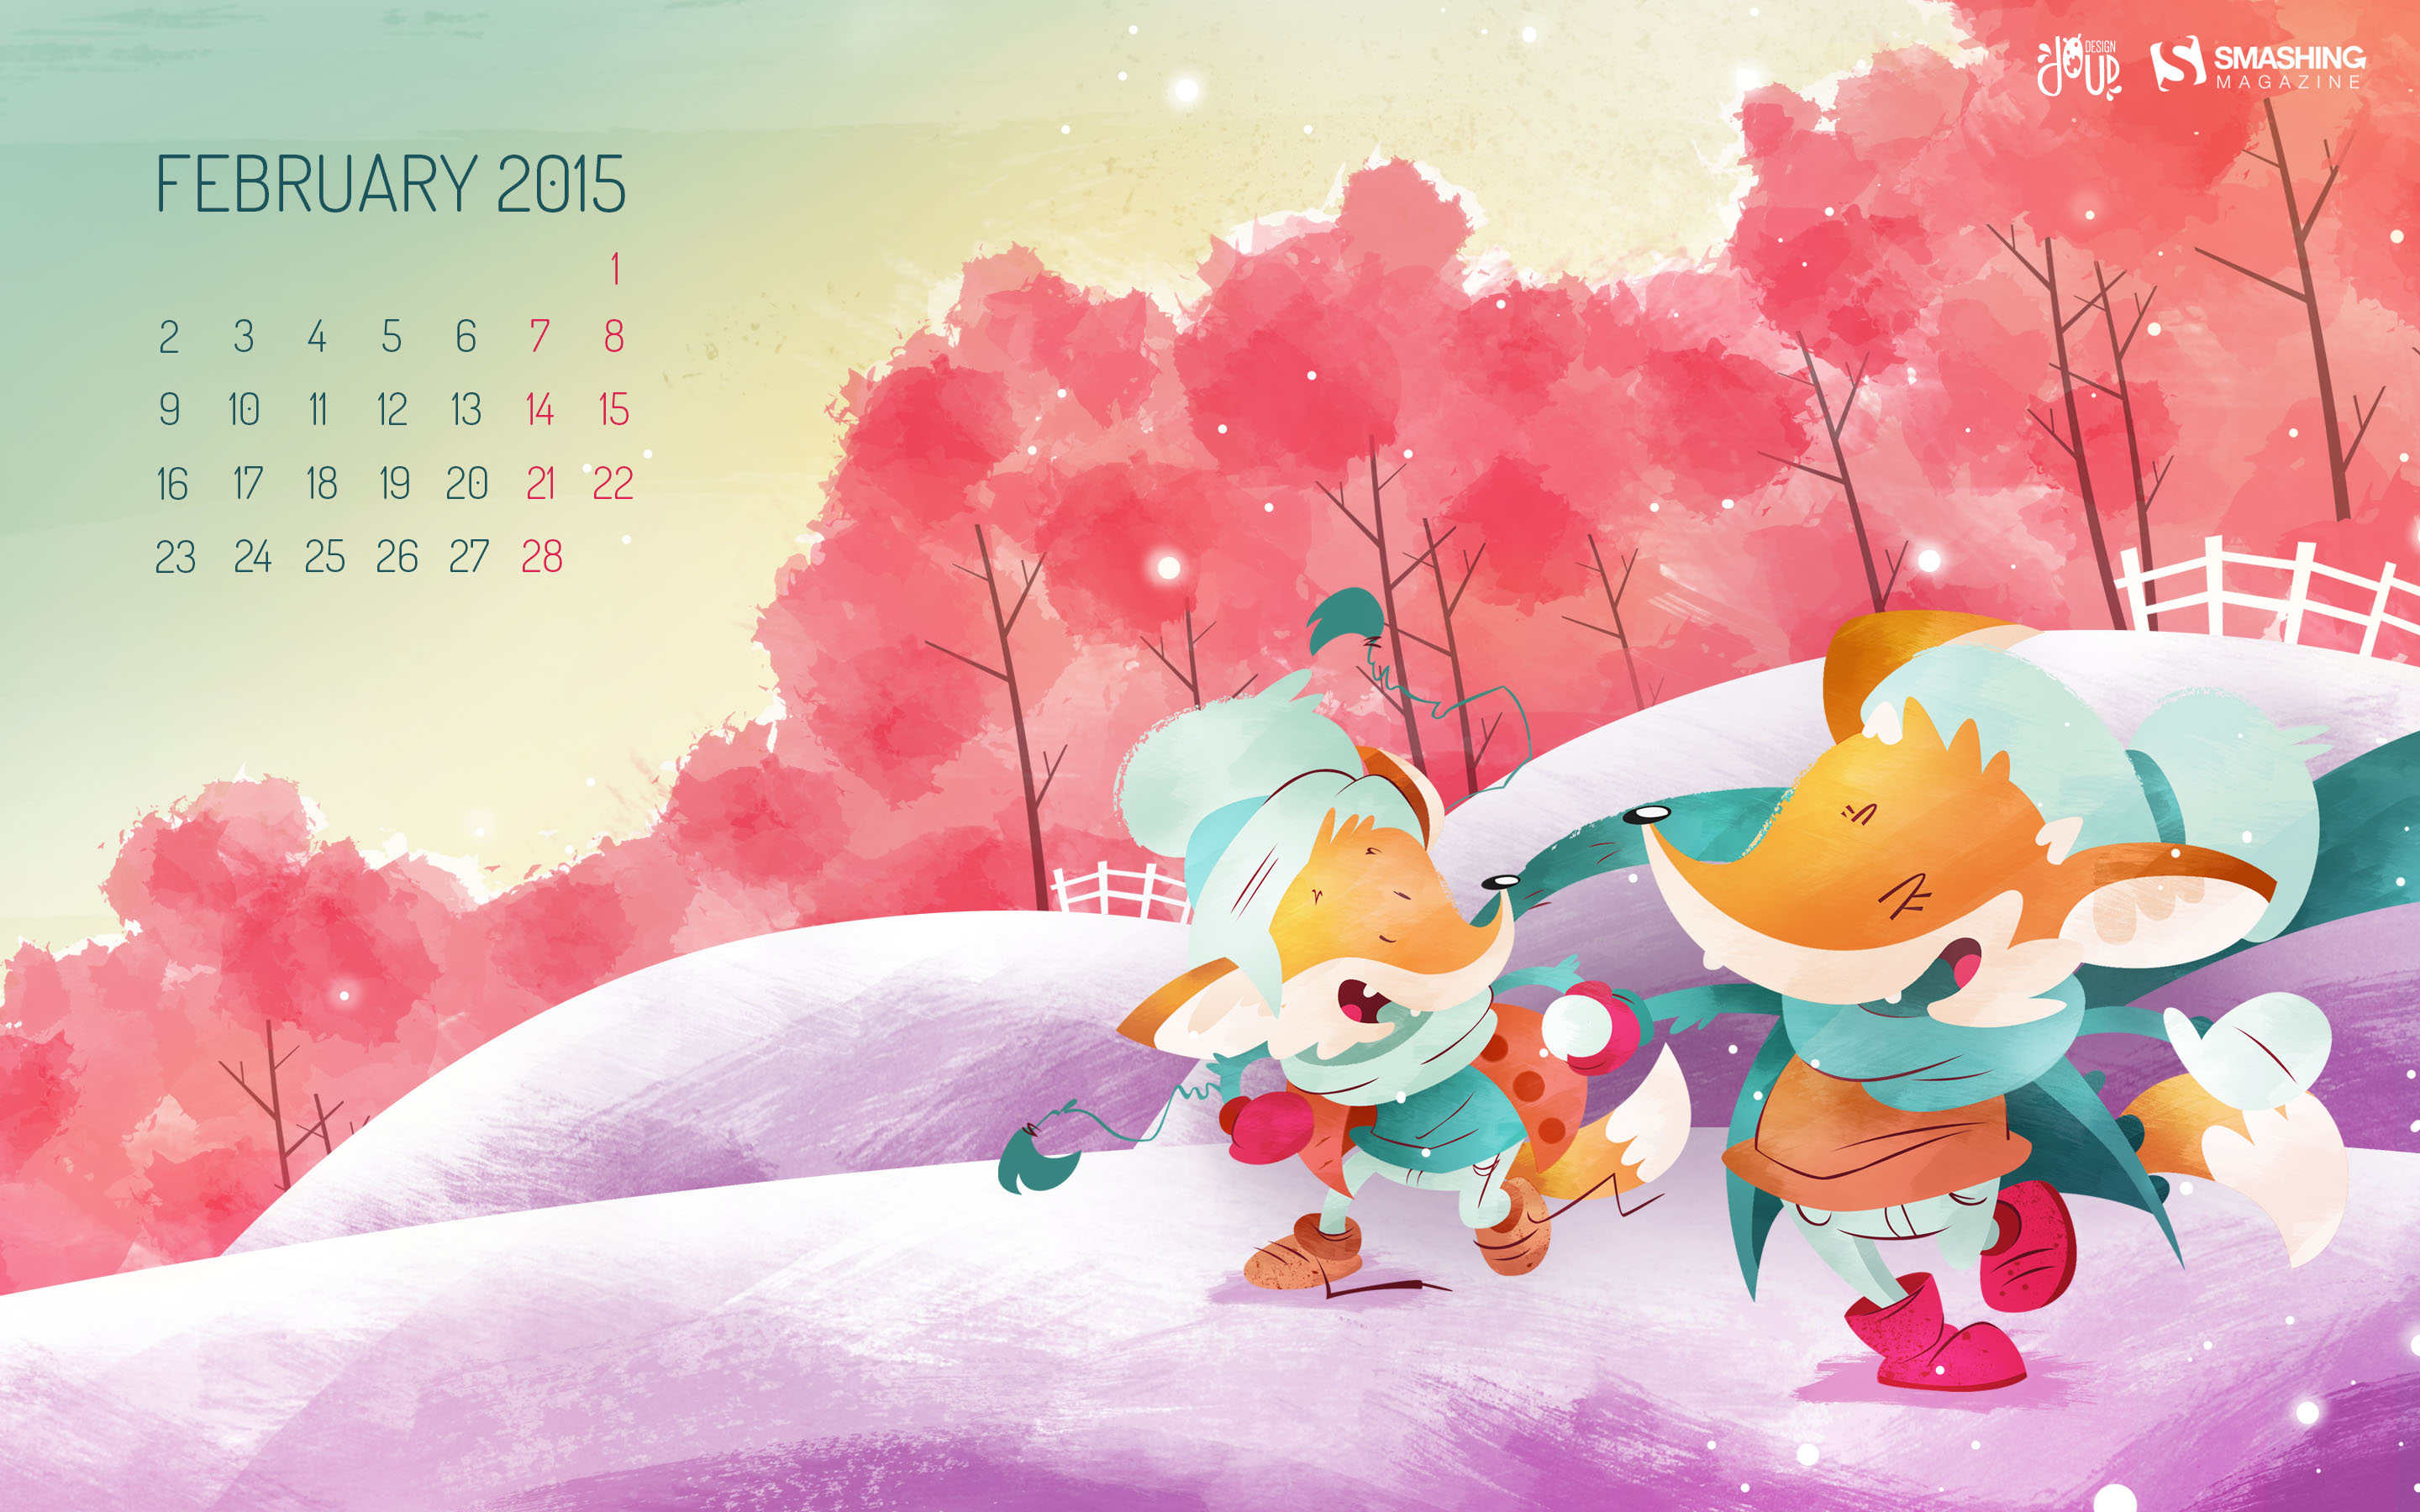 Desktop Wallpaper Calendars February 2015 Smashing Magazine 2880x1800